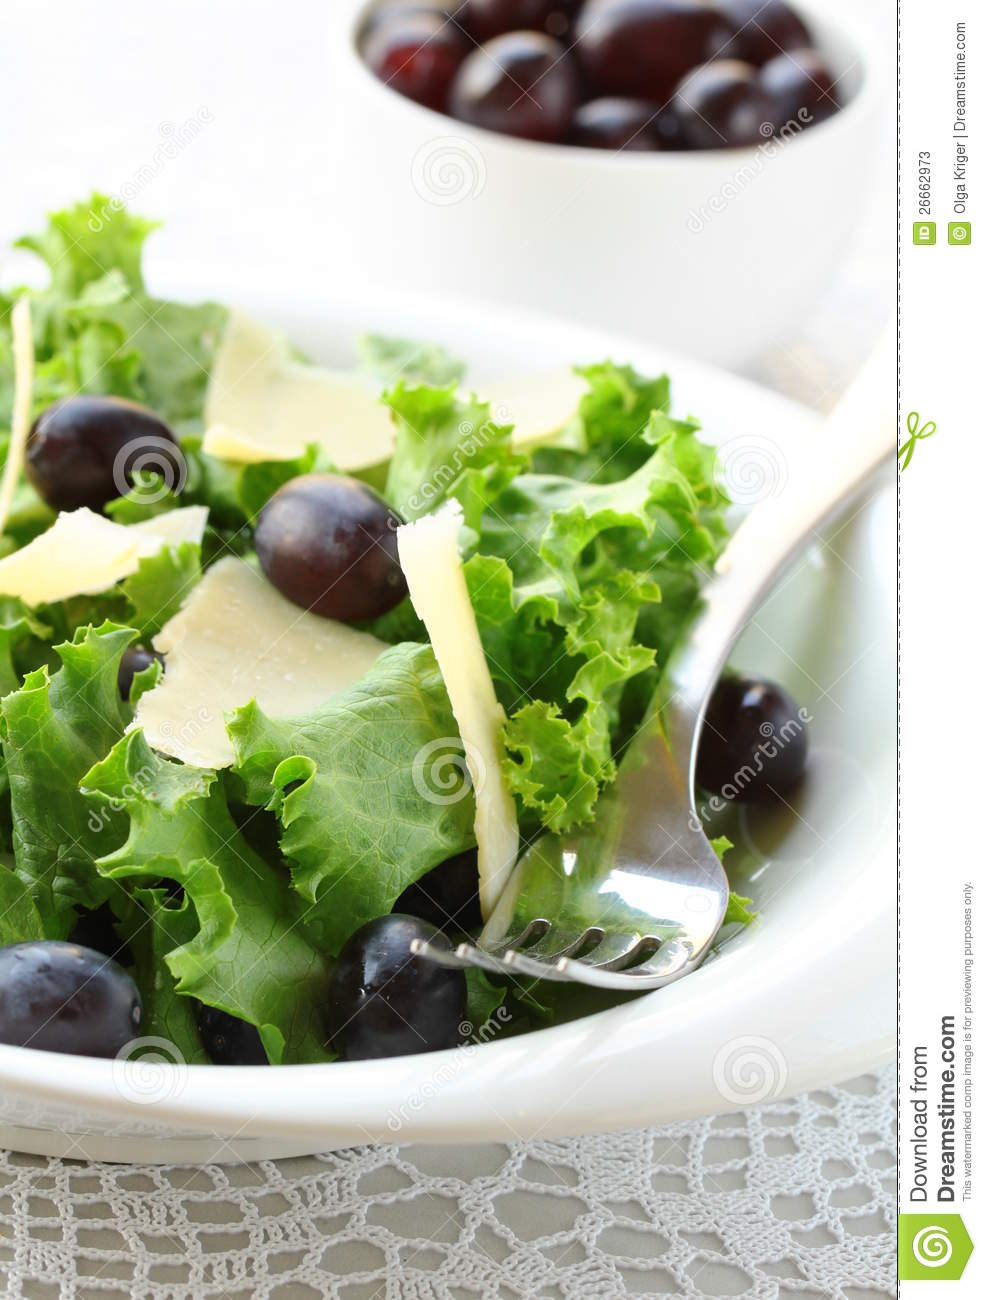 Stock Photos: Salad with grapes and cheese